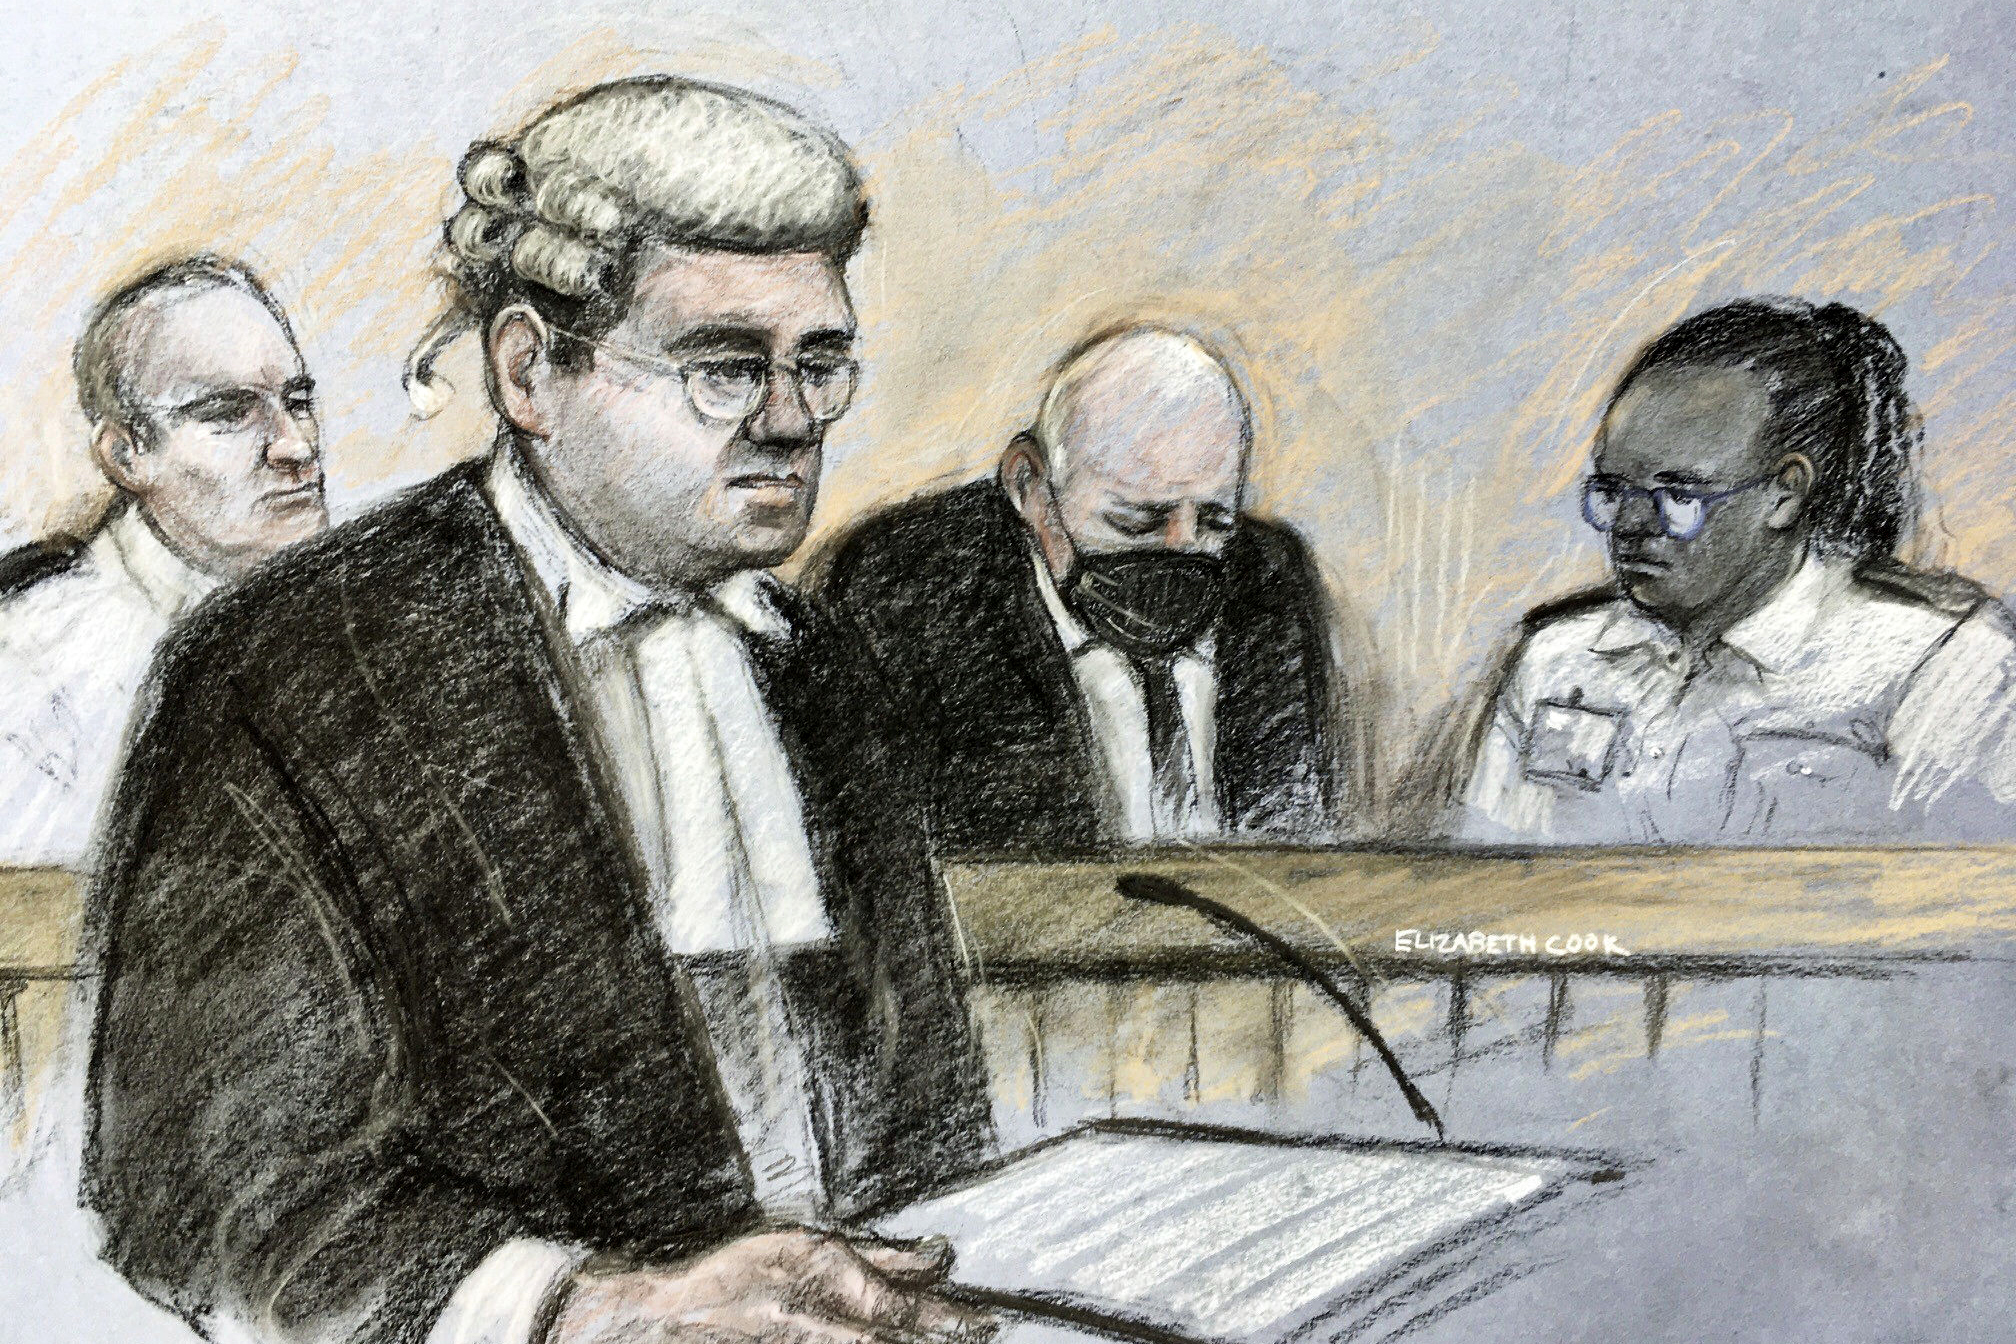 Police officer sentenced to life in prison for murder of young woman that sparked U.K. outcry